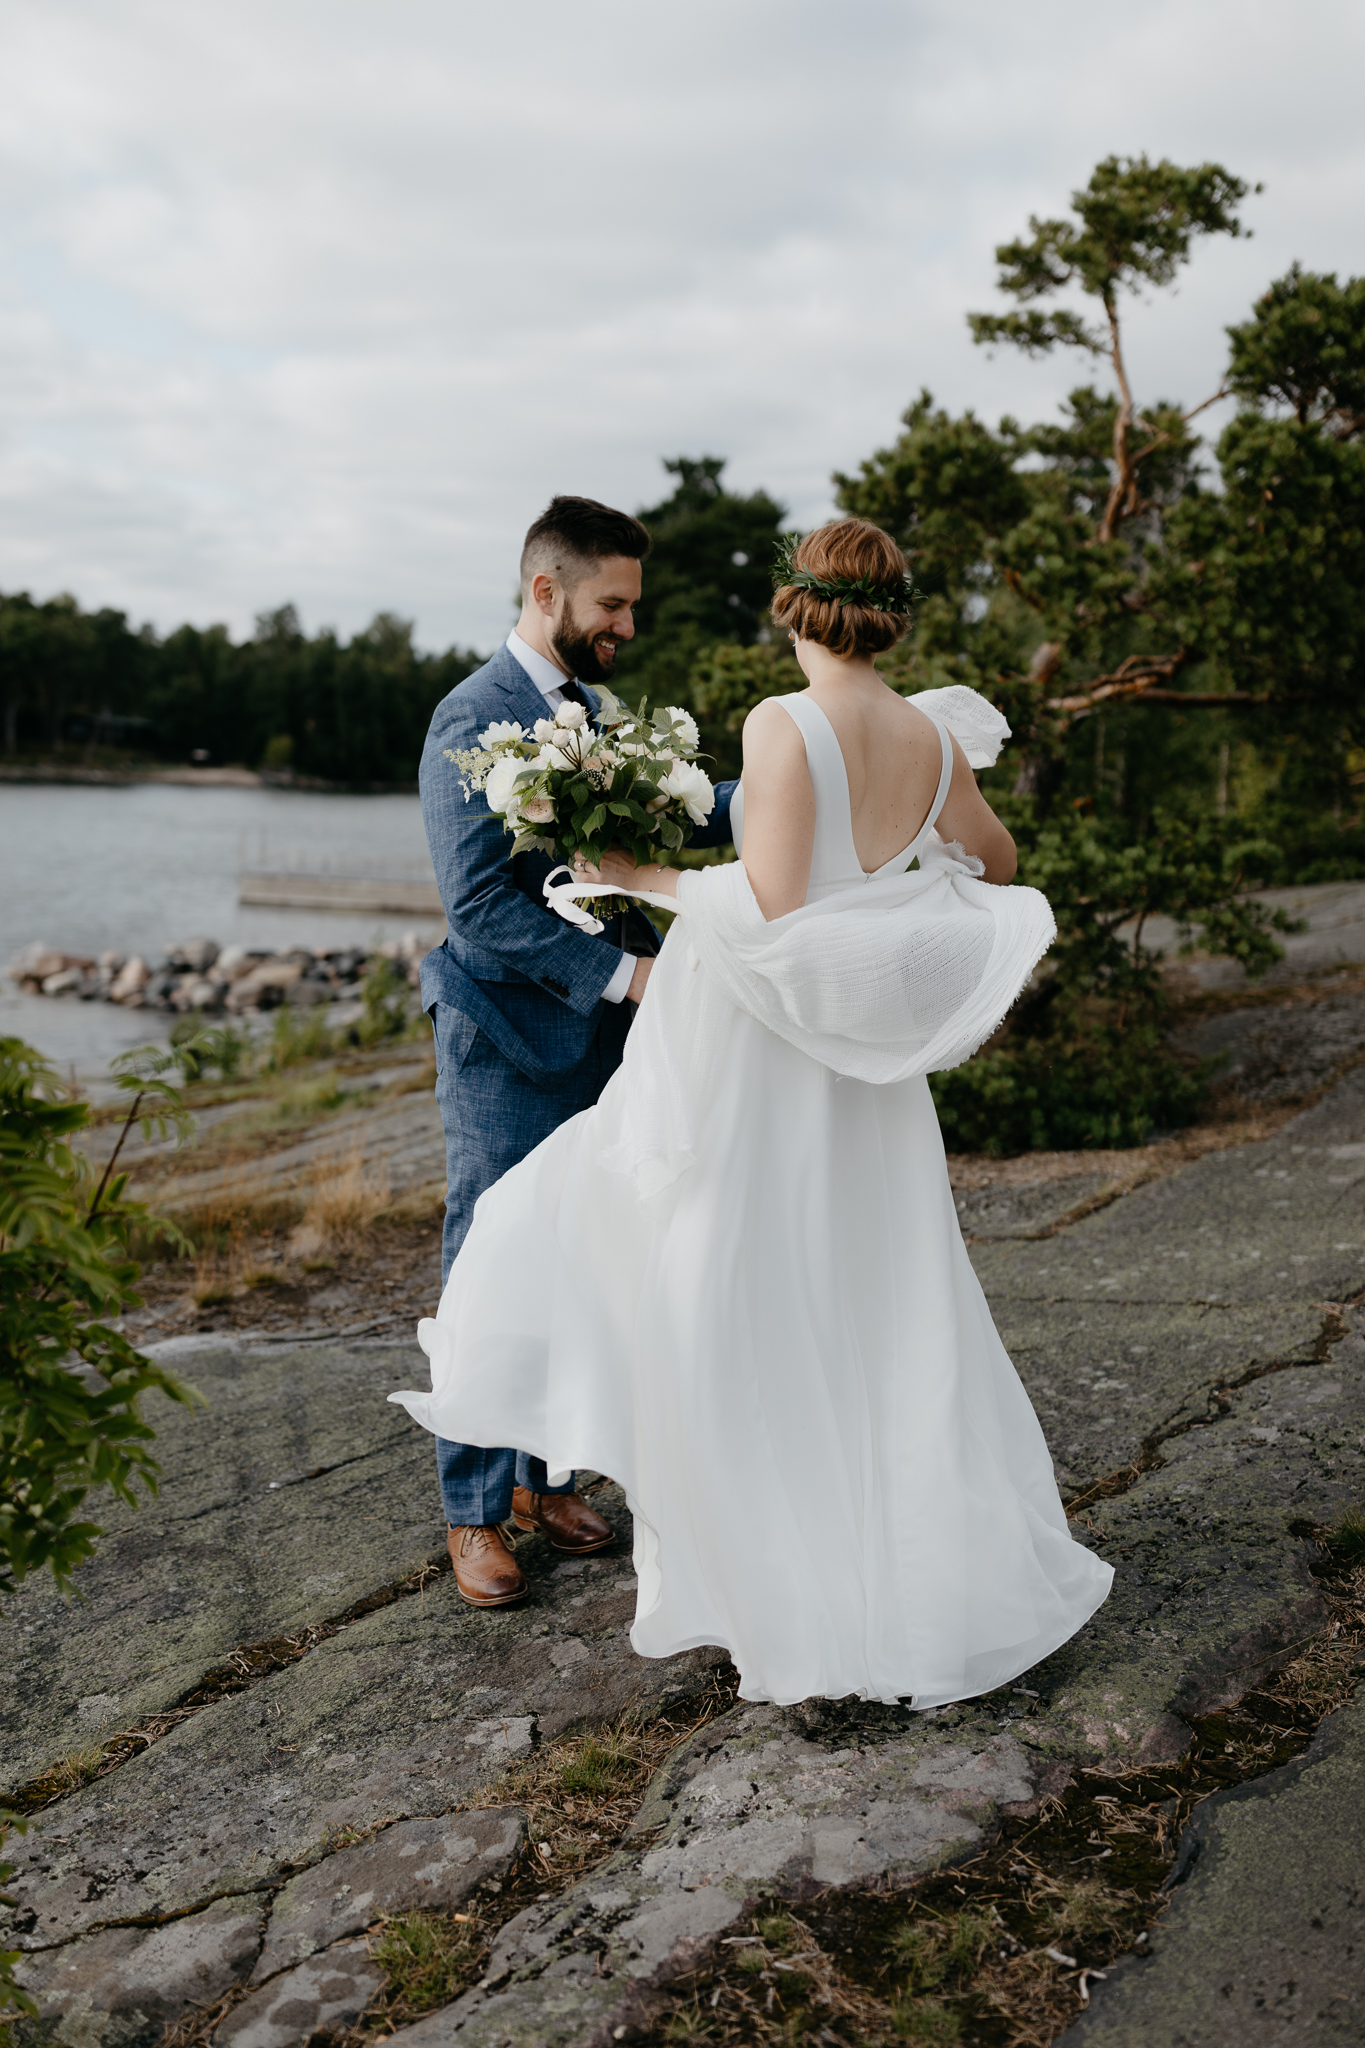 Vilhelmiina + Mark | Photo by Patrick Karkkolainen Wedding Photographer | Helsinki Wedding Photographer-125.jpg